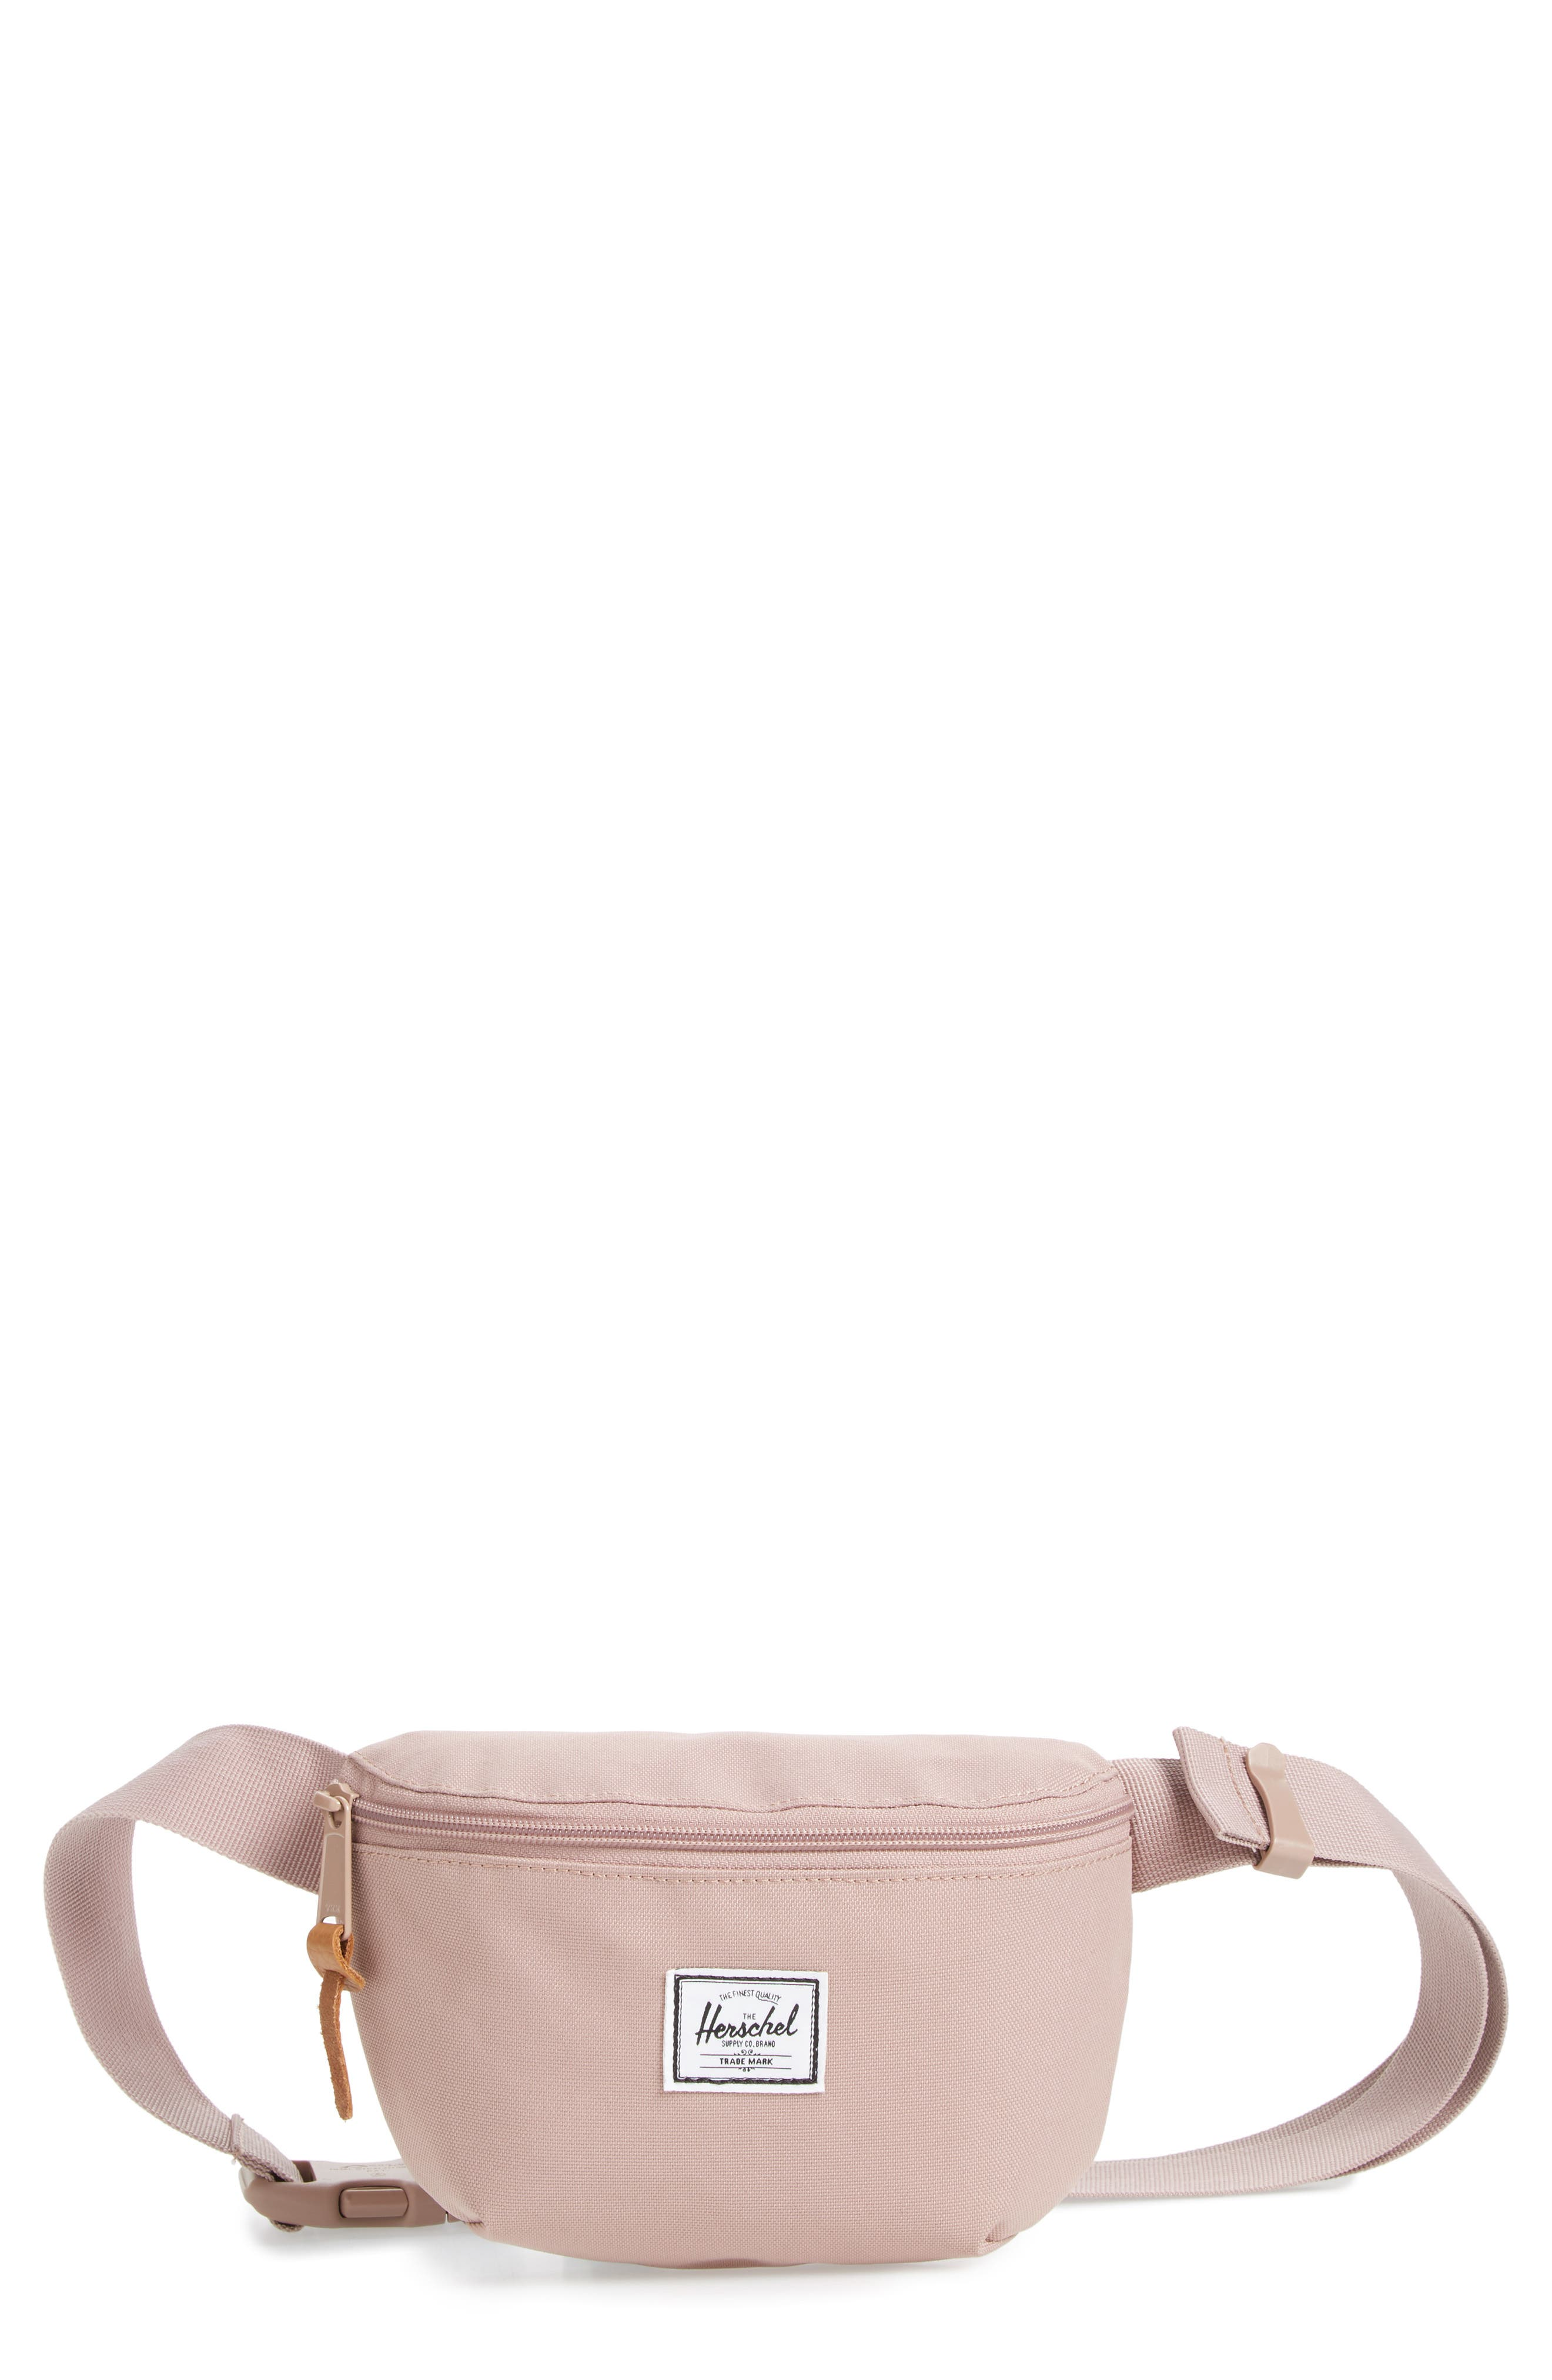 Fourteen Belt Bag,                             Main thumbnail 1, color,                             ASH ROSE